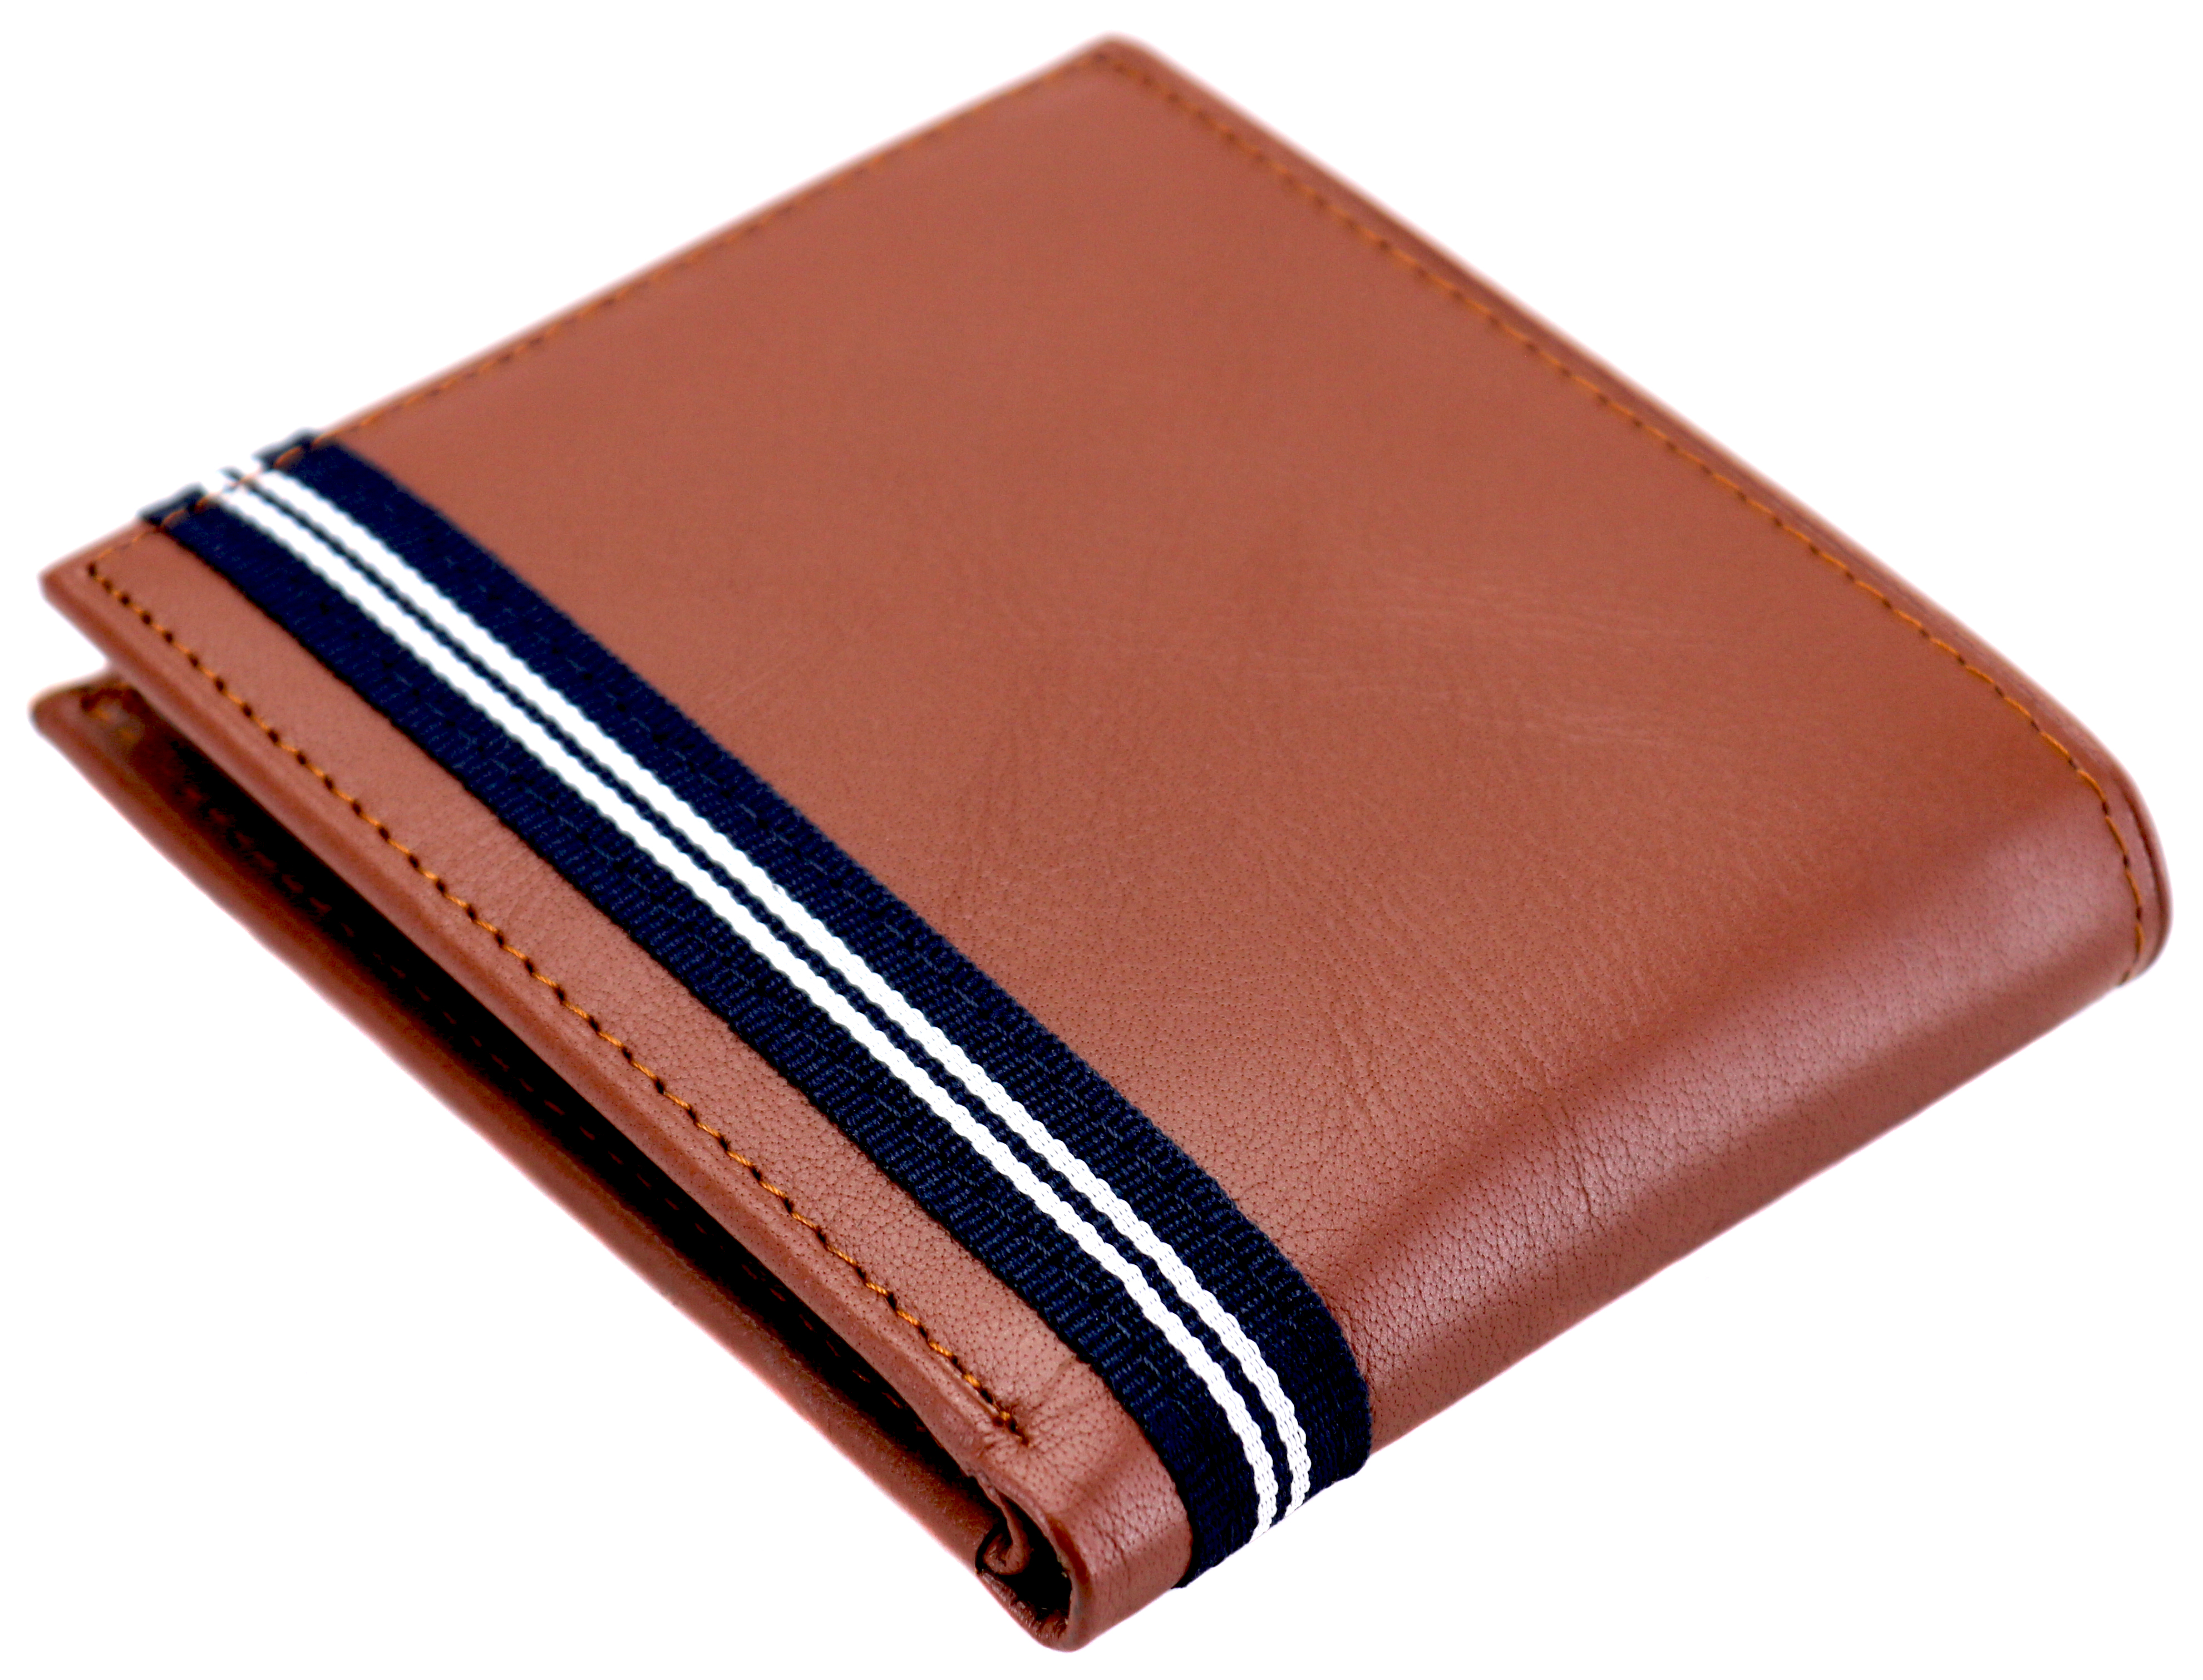 Nautica-Men-039-s-Genuine-Leather-Credit-Card-ID-Double-Billfold-Passcase-Wallet thumbnail 25